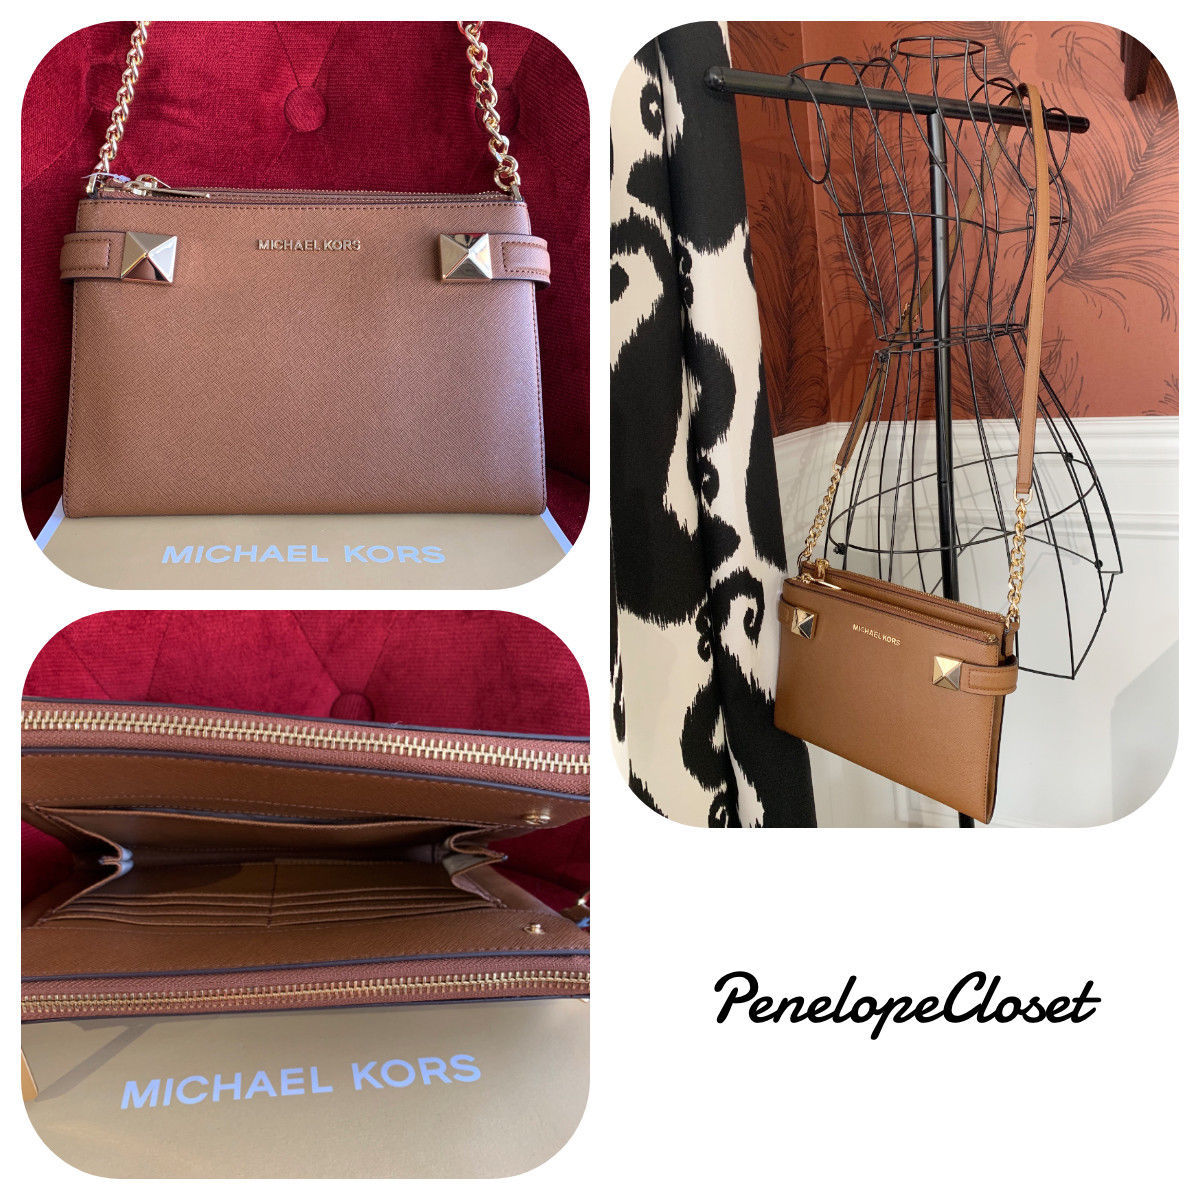 420dc4eac7d1 Nwt Michael Kors Saffiano Leather Karla East and 50 similar items. 57